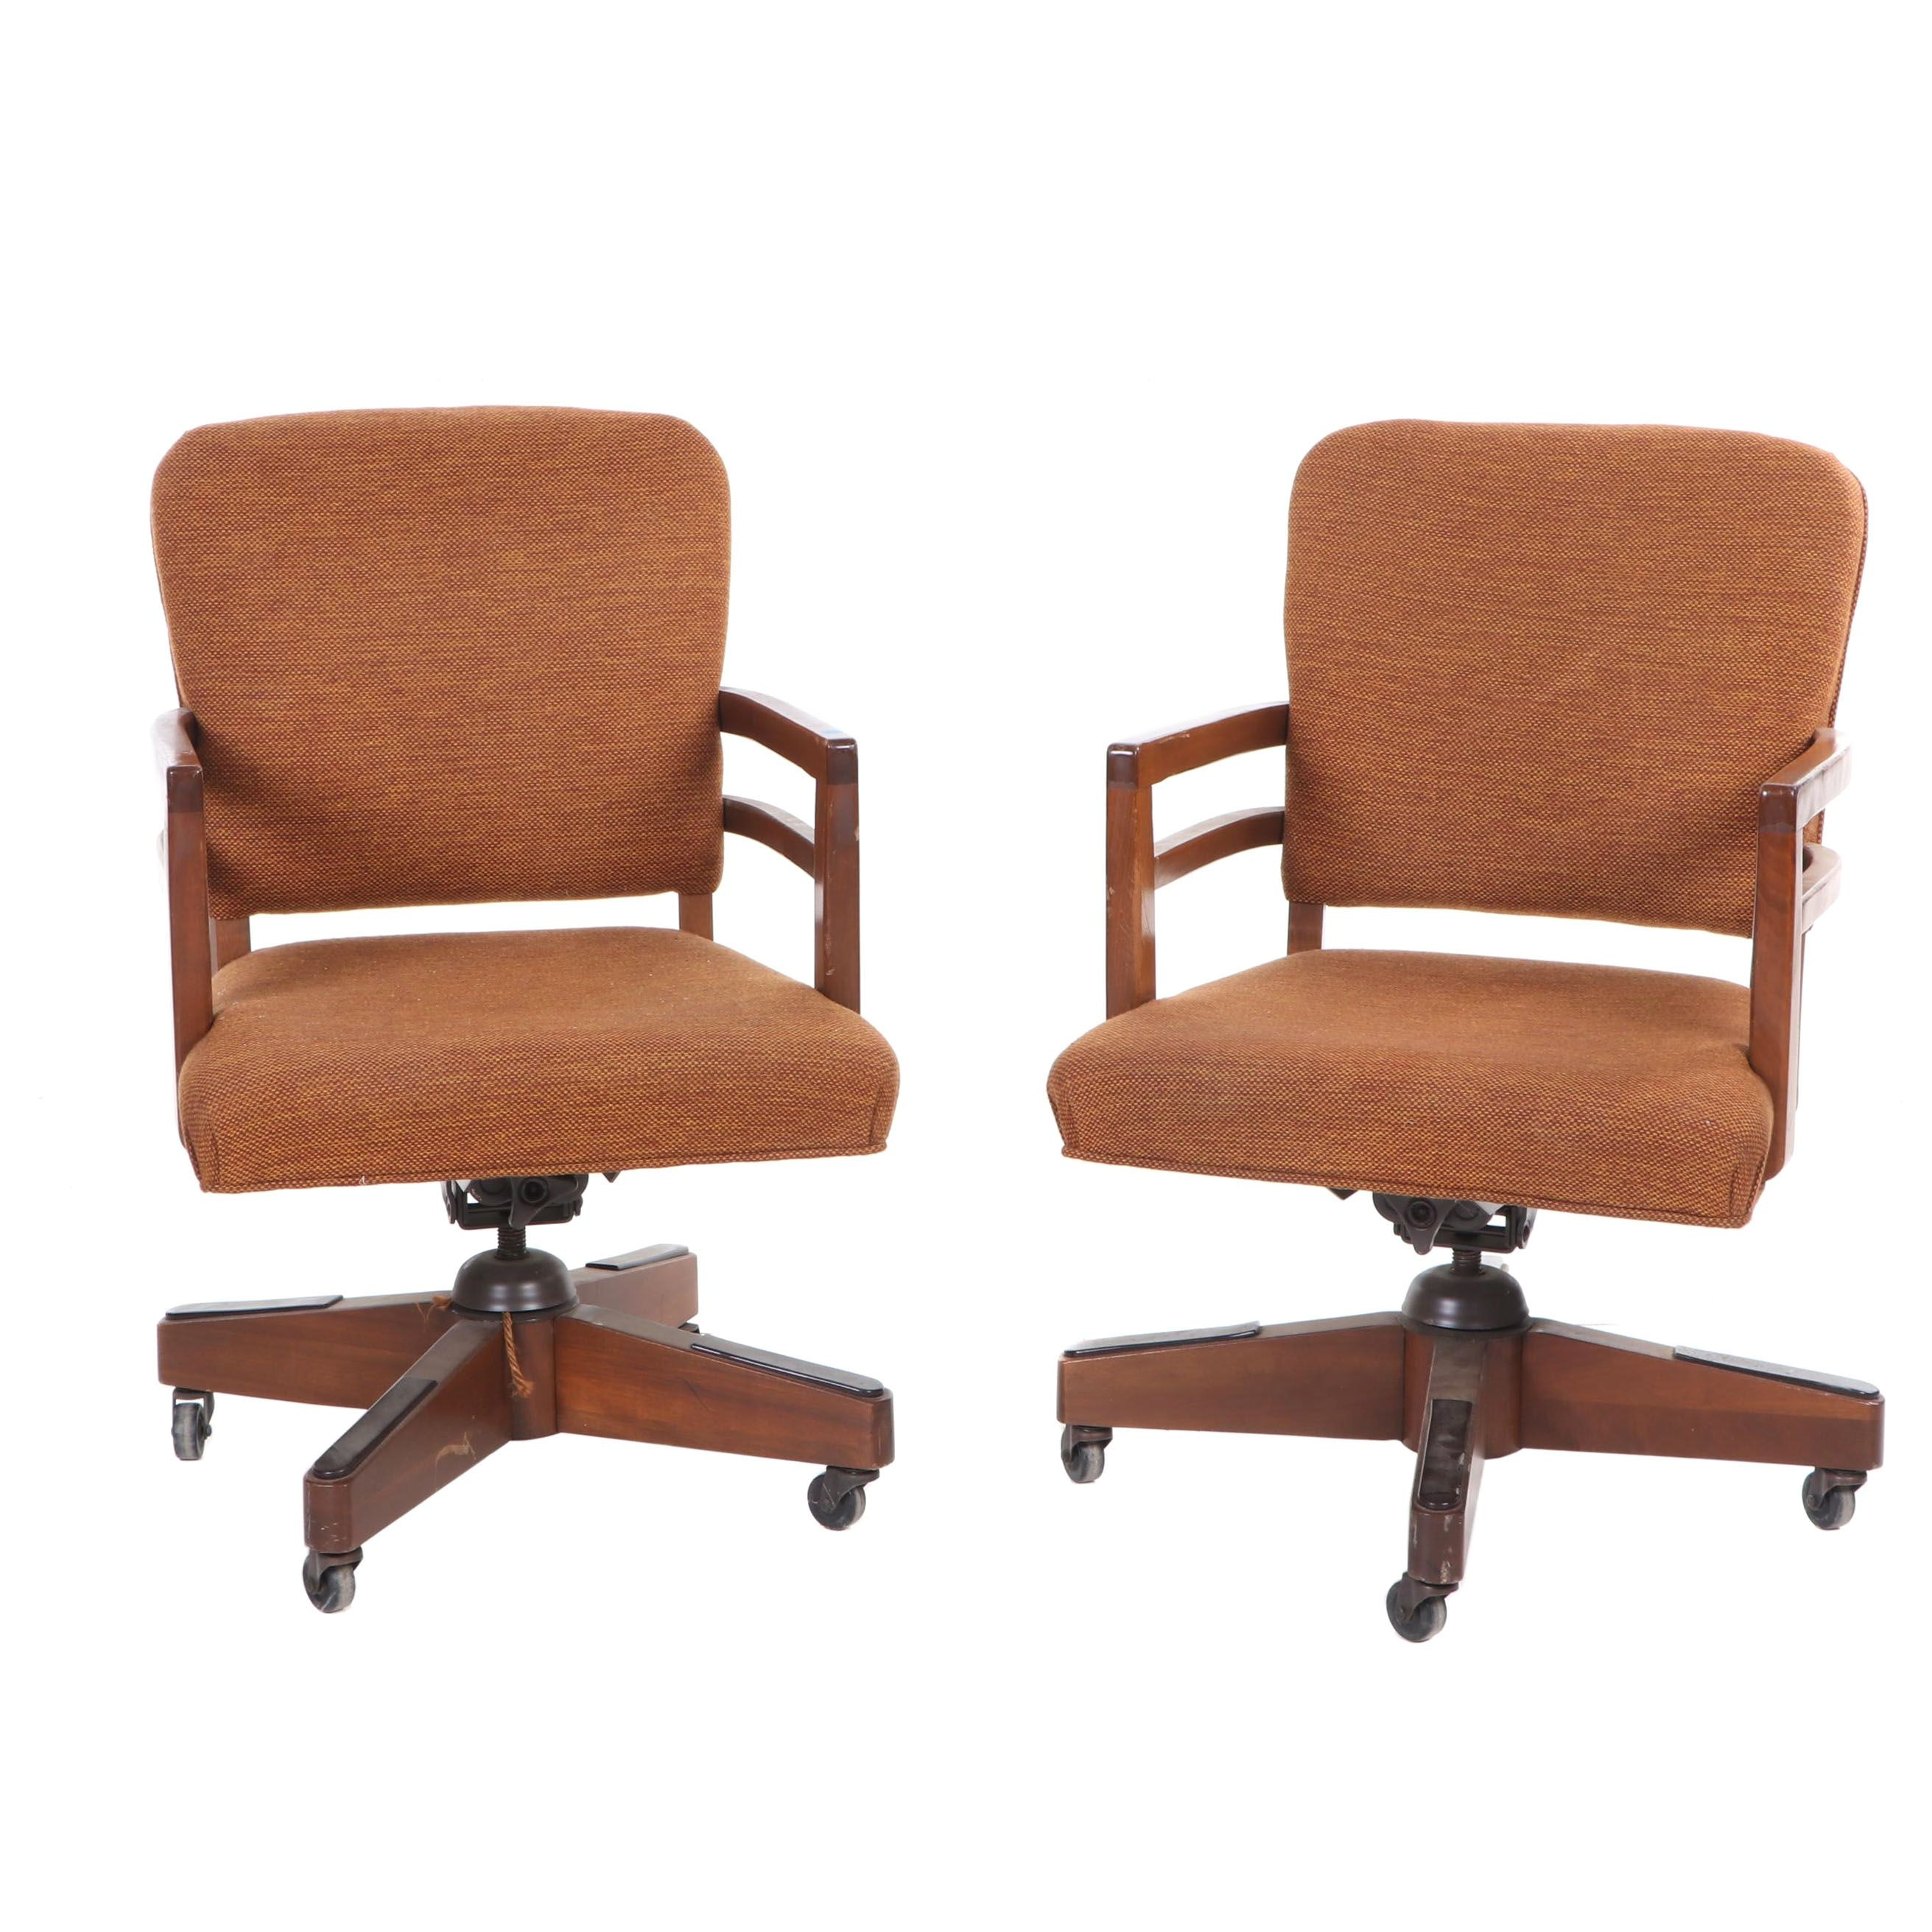 Walnut Upholstered Swivel Base Office Chairs, Mid-Century